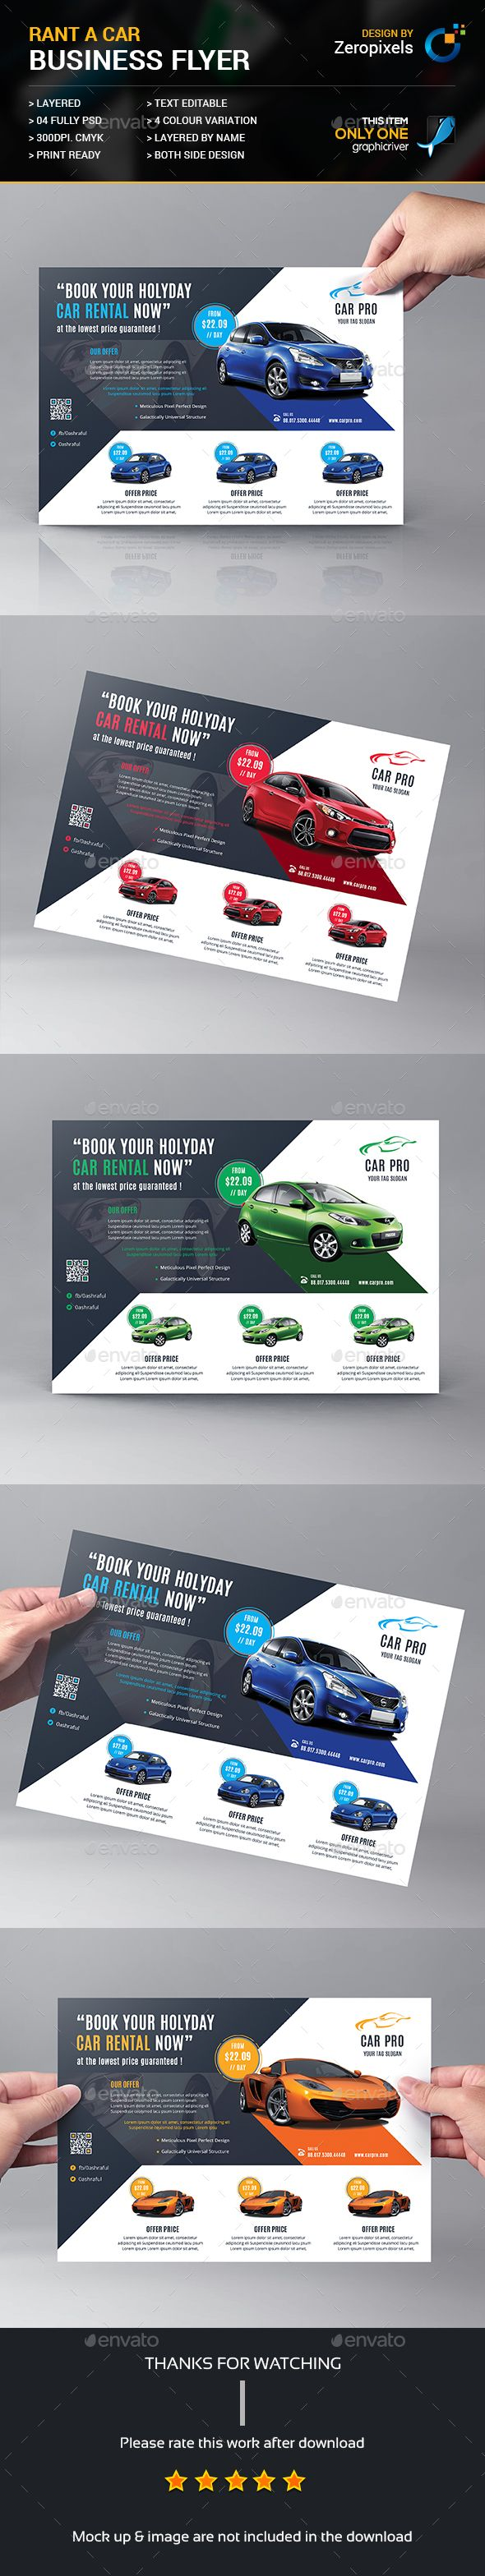 Rant A Car Business Flyer Automotores Visitenkarten